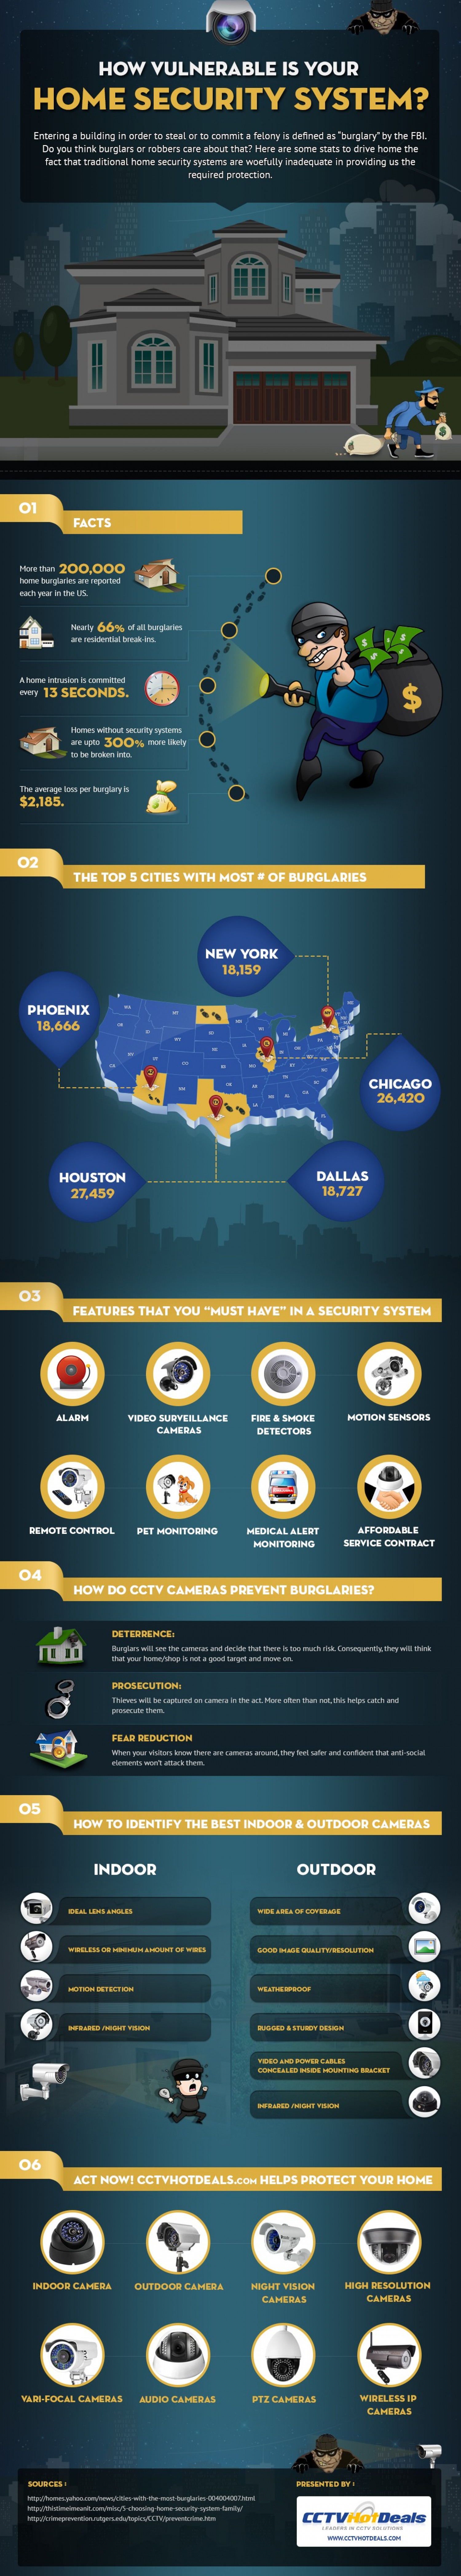 How Vulnerable Is Your Home Security System Infographic